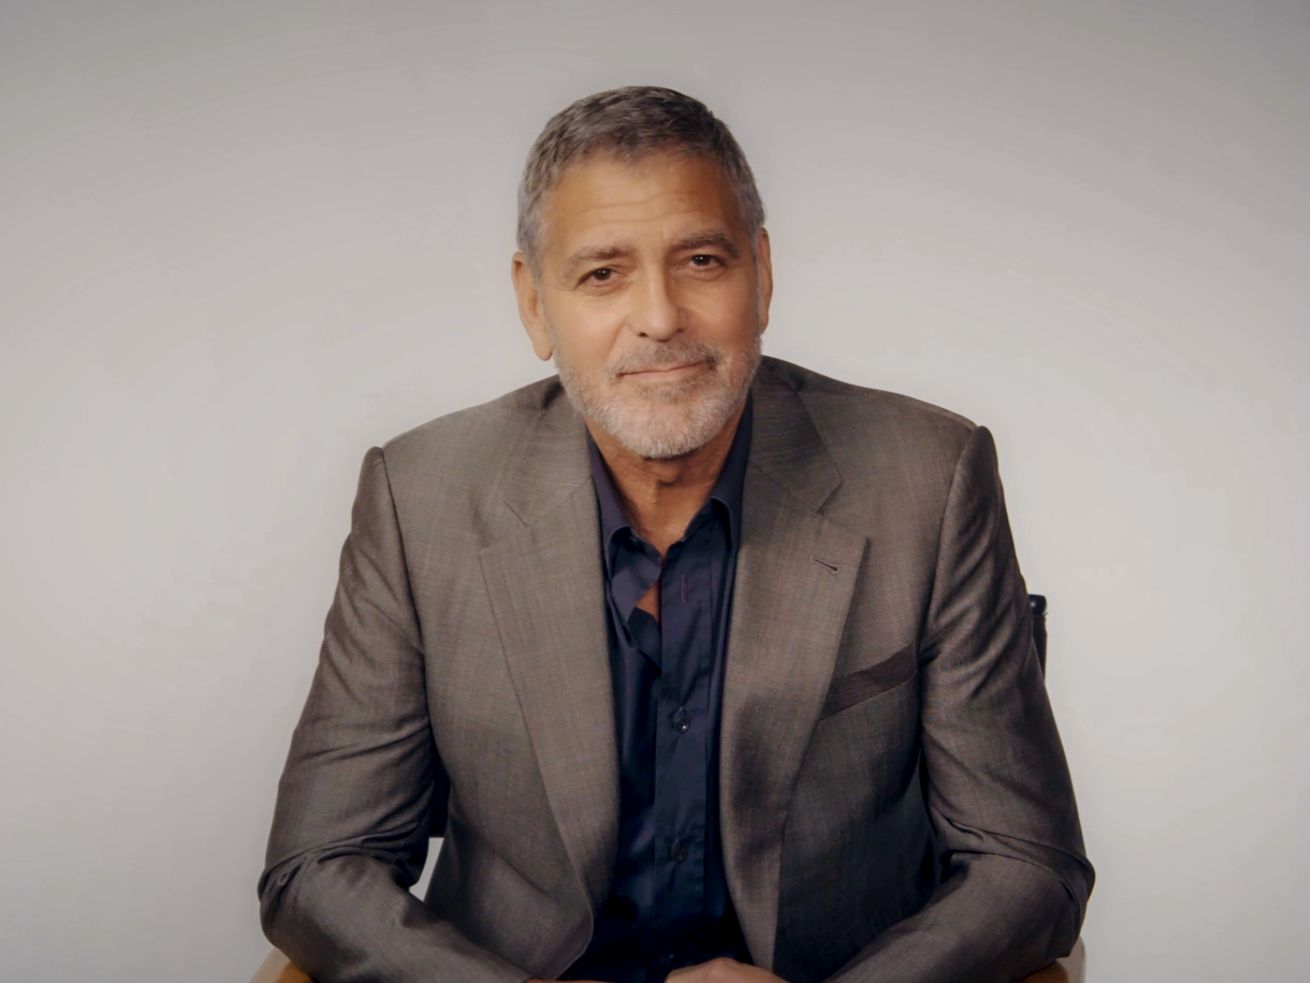 George Clooney says he cuts his own hair with a Flowbee